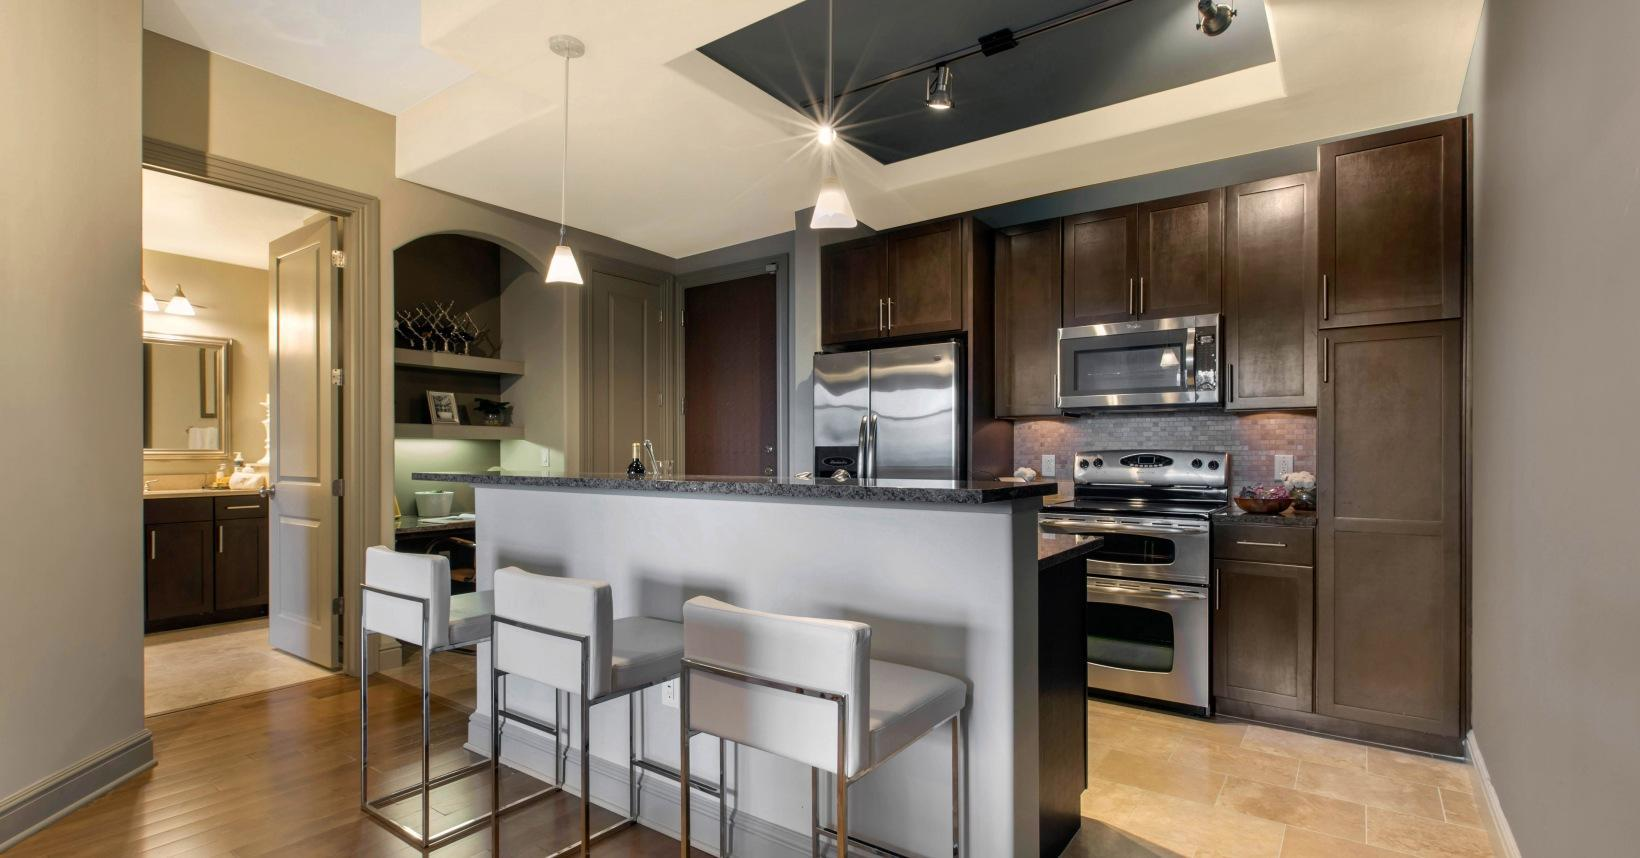 125 W Tremont Ave #915, Charlotte, NC - $2,264 USD/ month